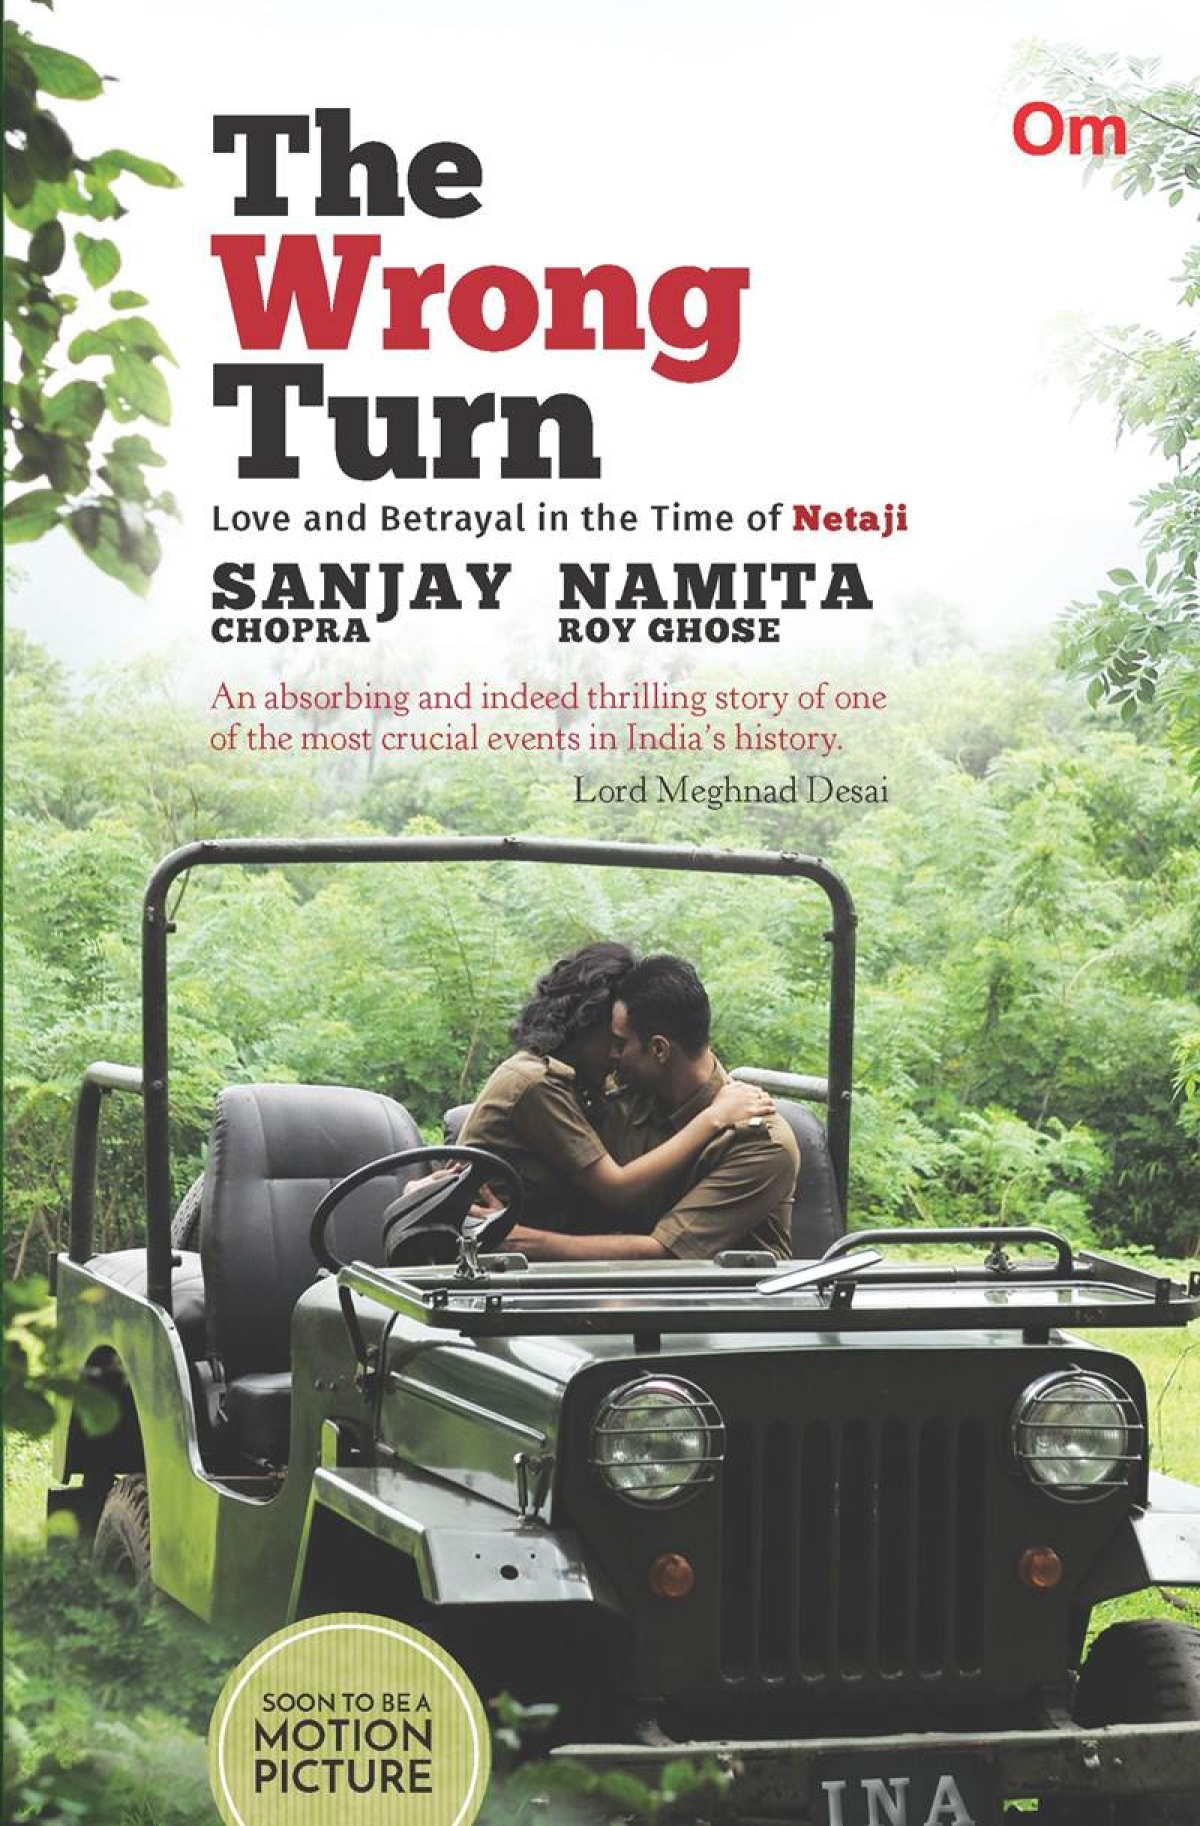 The Wrong Turn: Love and Betrayal in the Time of Netaji- Review